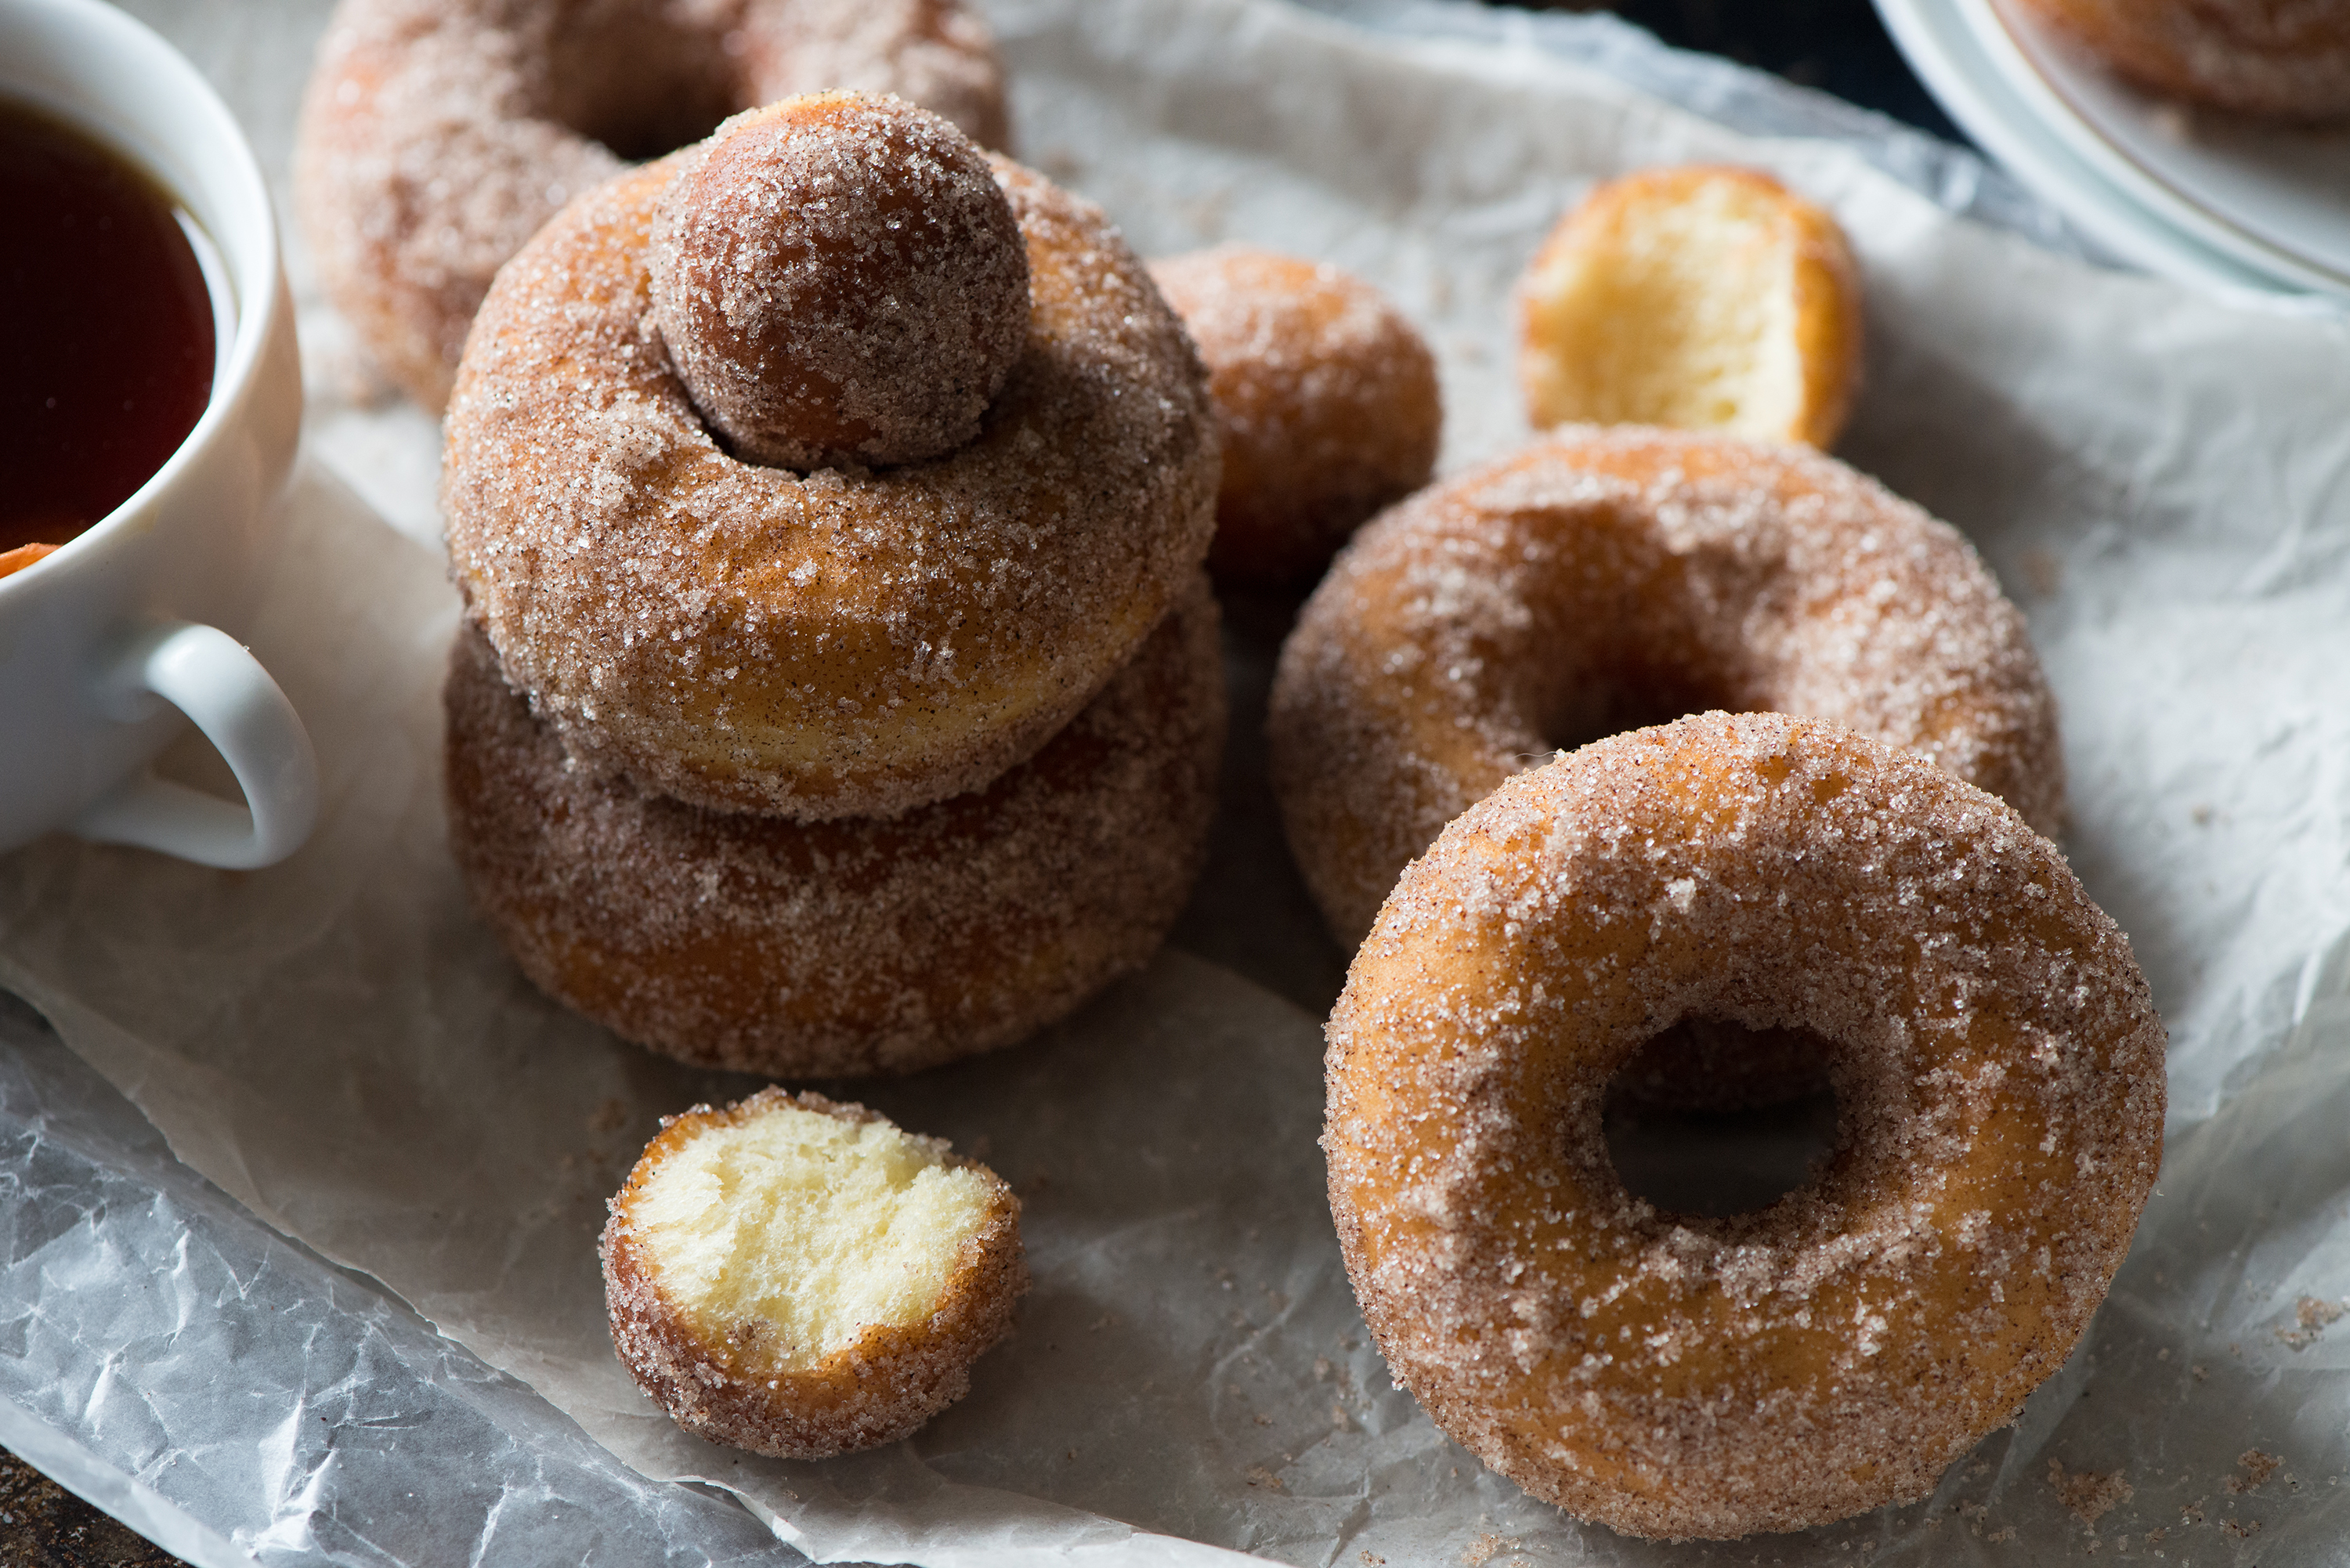 Cinnamon Sugar Doughnut | Now, Forager | Teresa Floyd Photography